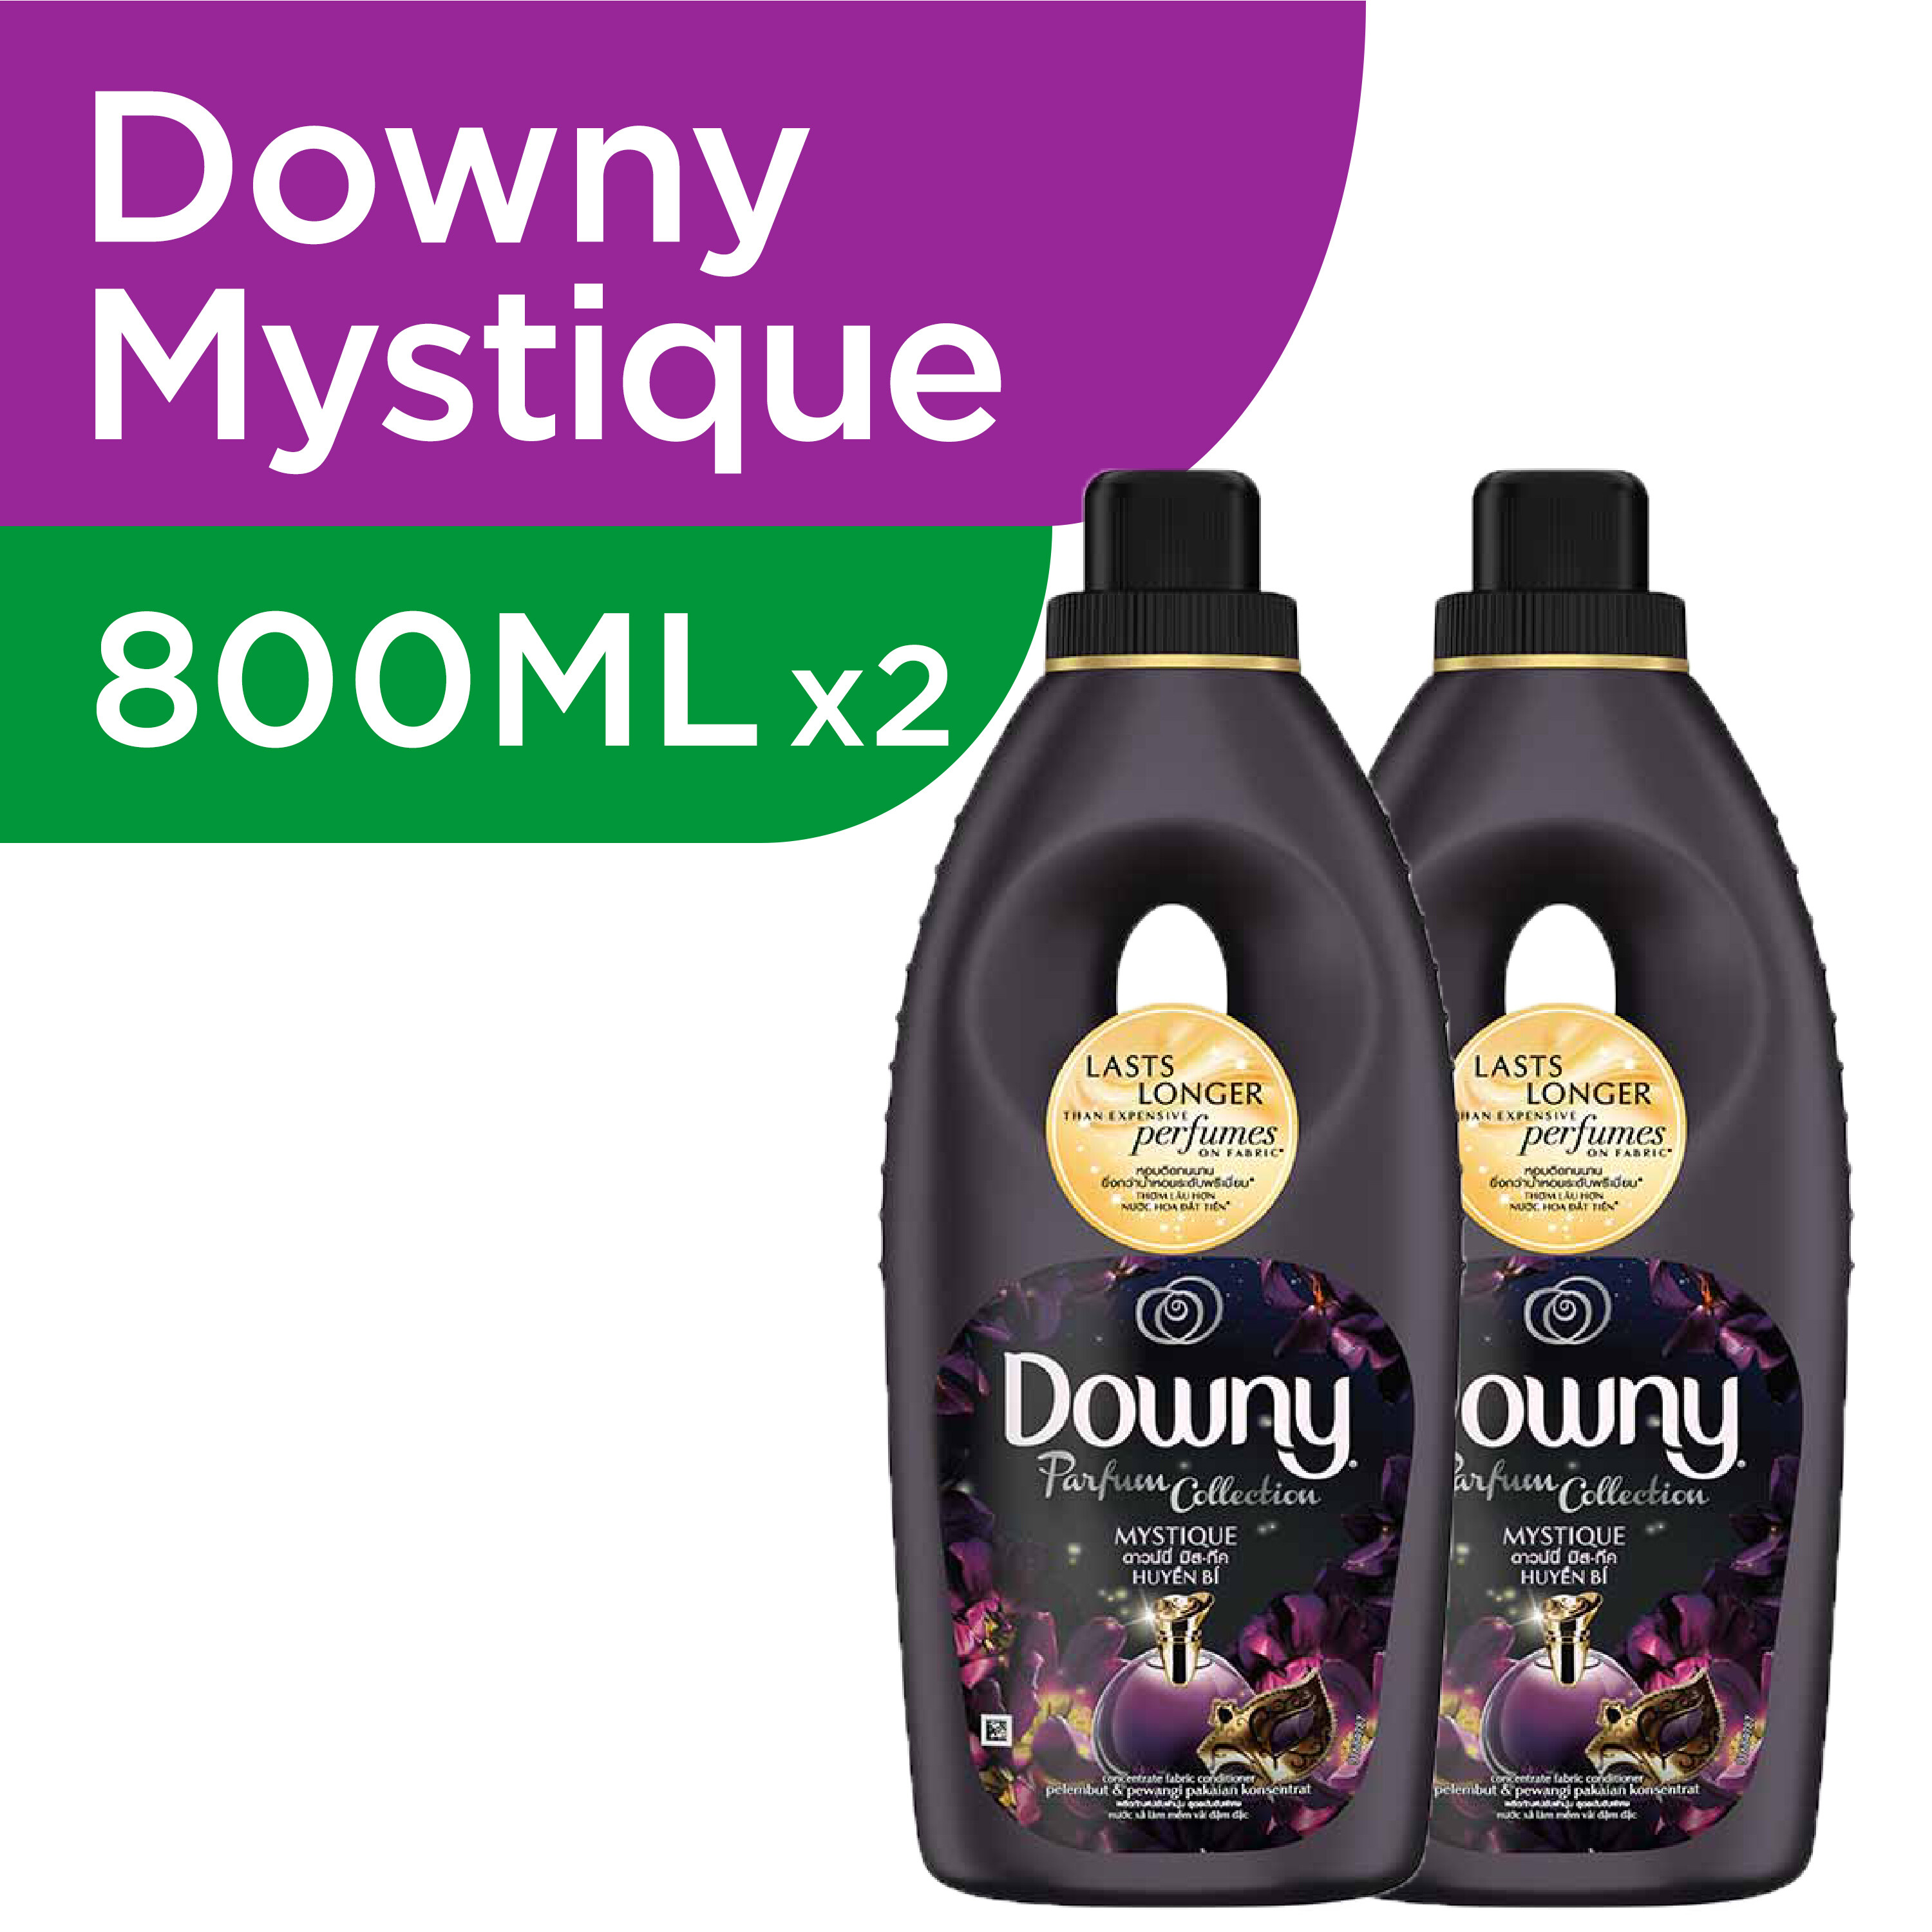 Downy MYSTIQUE Parfum Collection Concentrate Fabric Conditioner 800ml [BUNDLE OF 2]